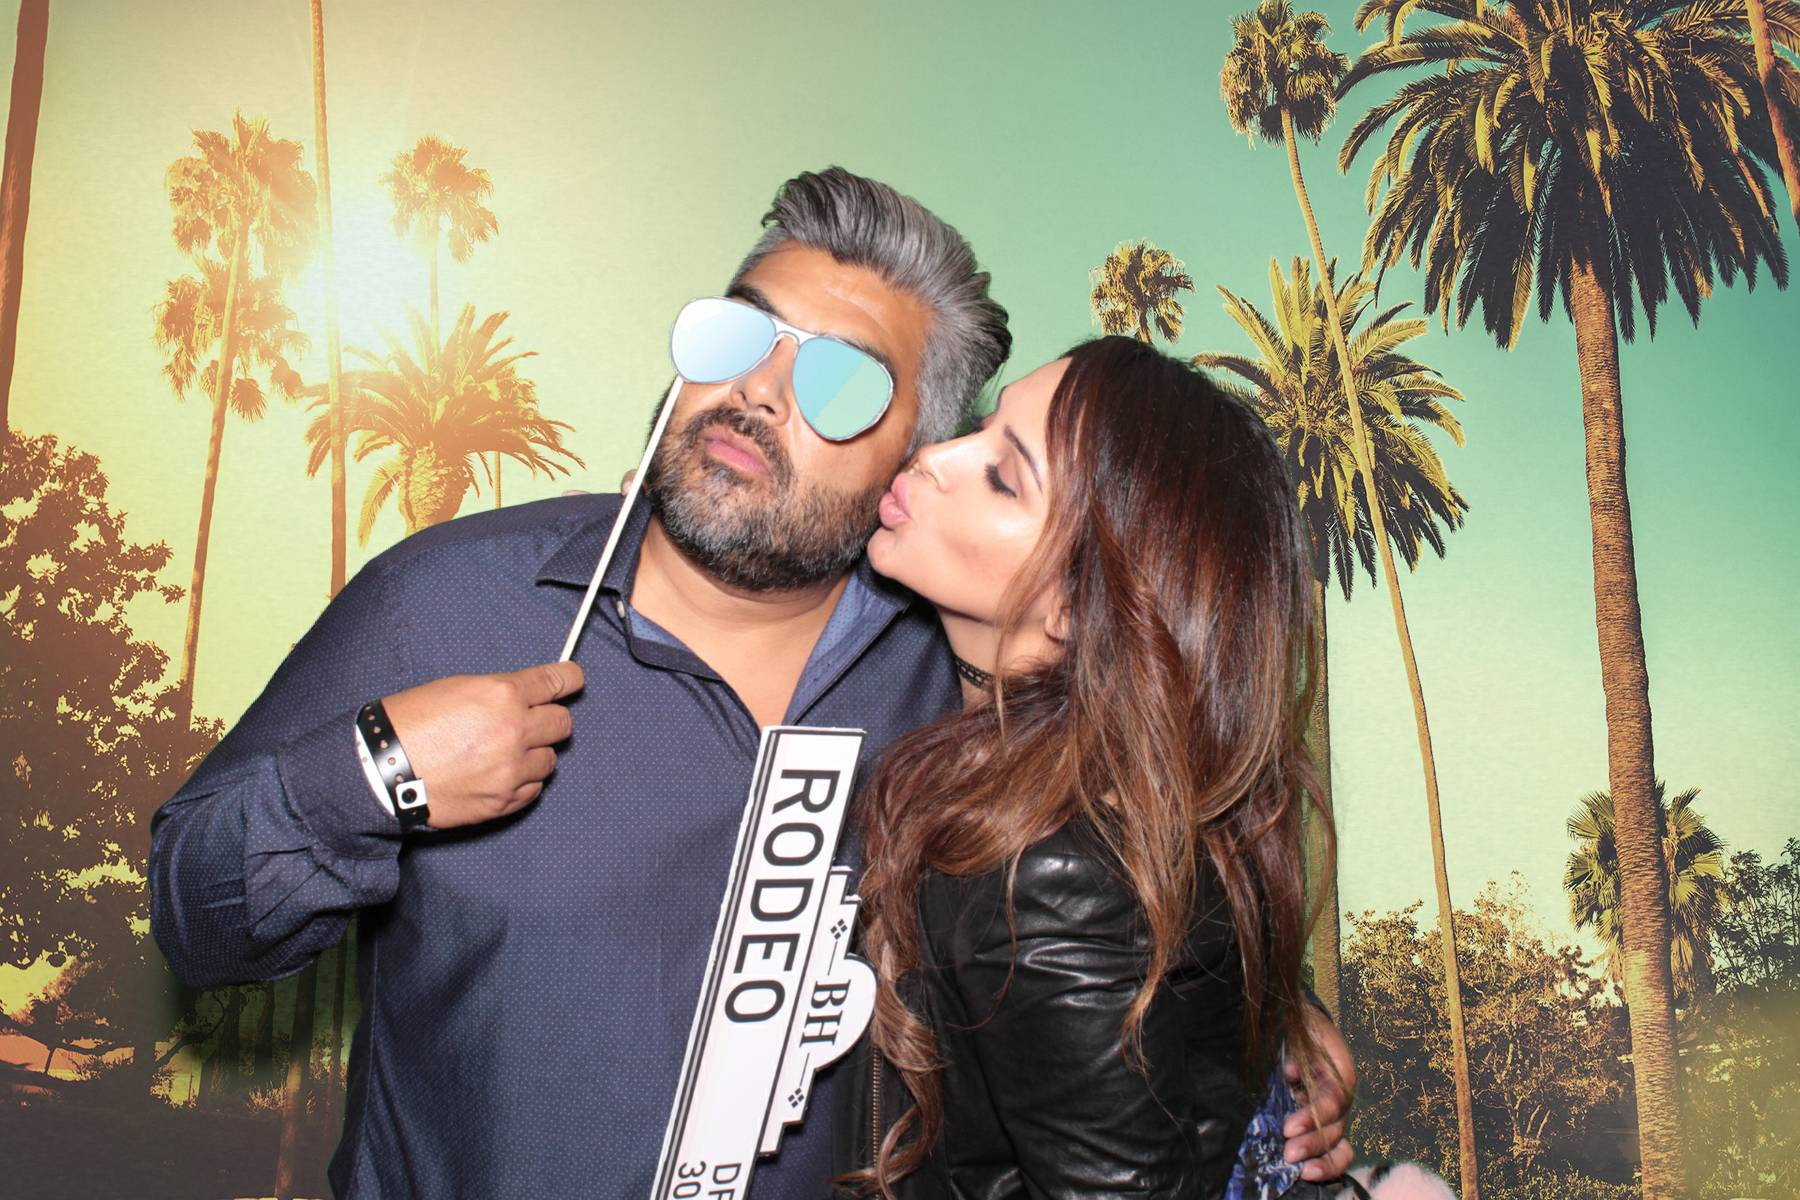 A green screen photo taken by Maple Leaf Photo Booths in Los Angeles of attendees of the 2016 Taste of LA Festival at Paramount Studios